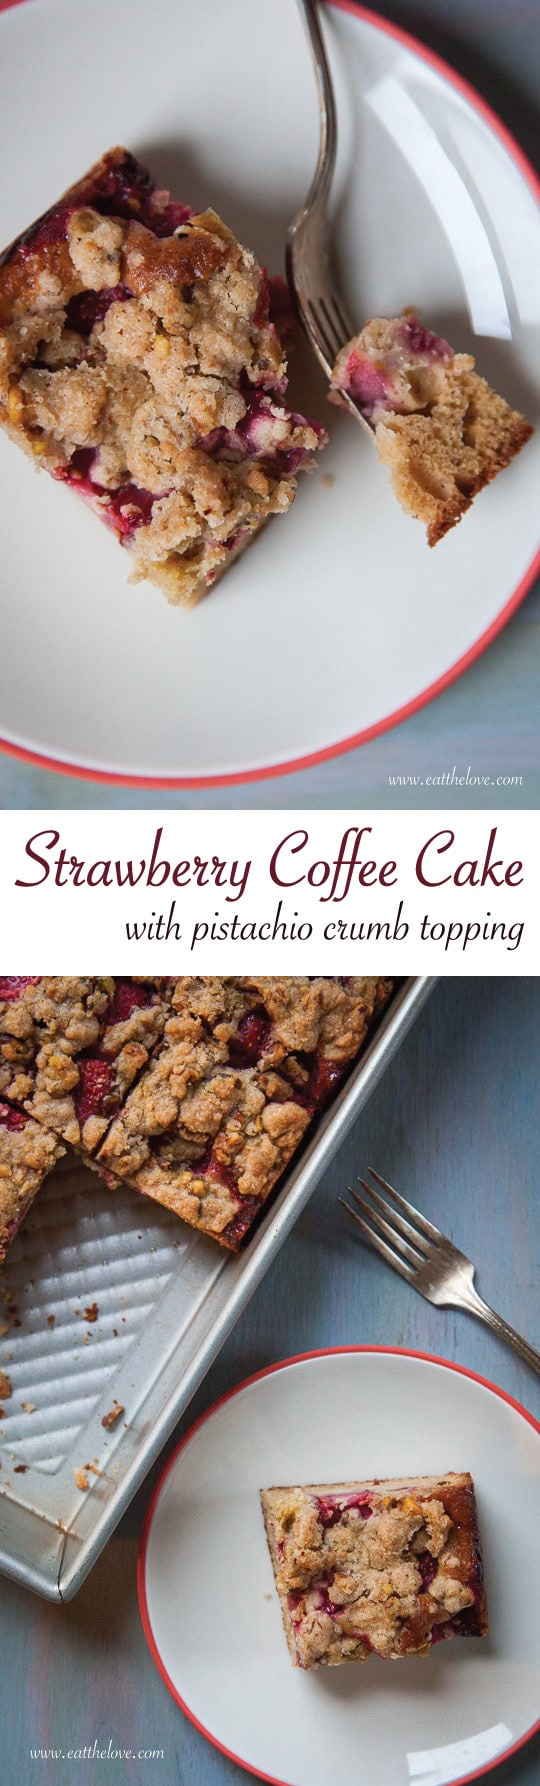 An easy-to-make Strawberry Coffee Cake with Pistachio Crumb Topping. Photo and recipe by Irvin Lin